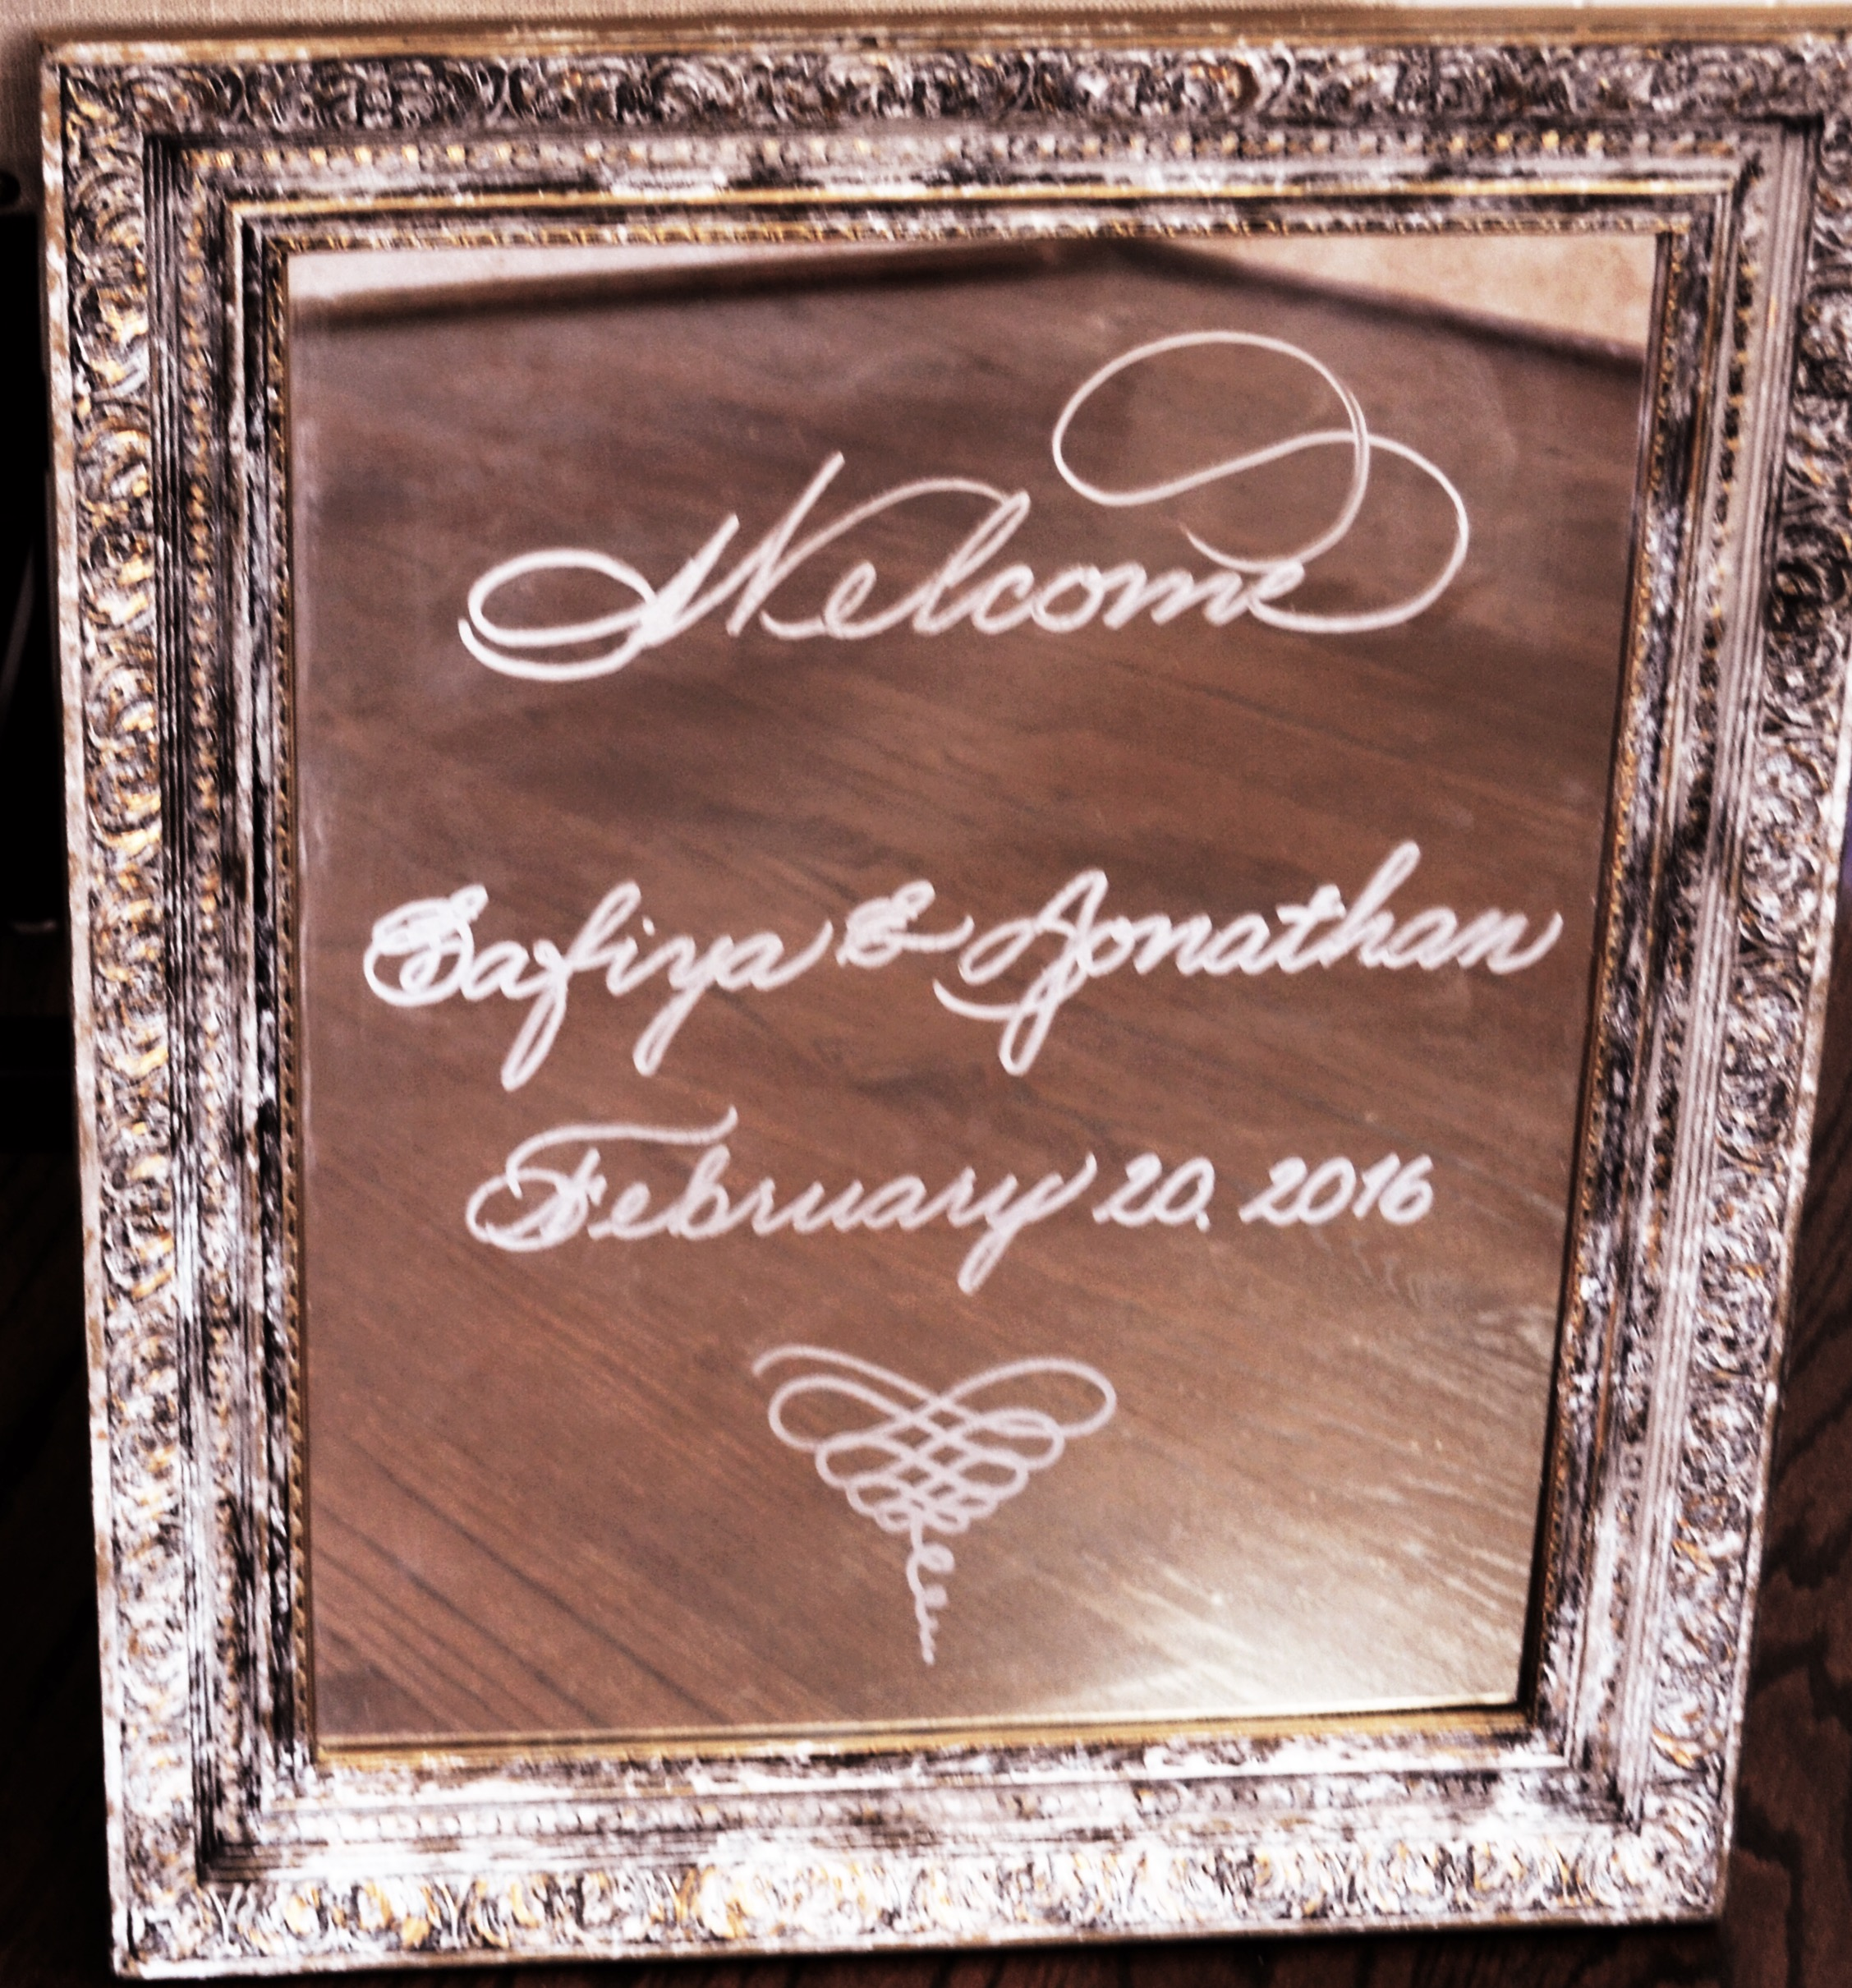 Houston Calligraphy Wedding Welcome Mirror.JPG